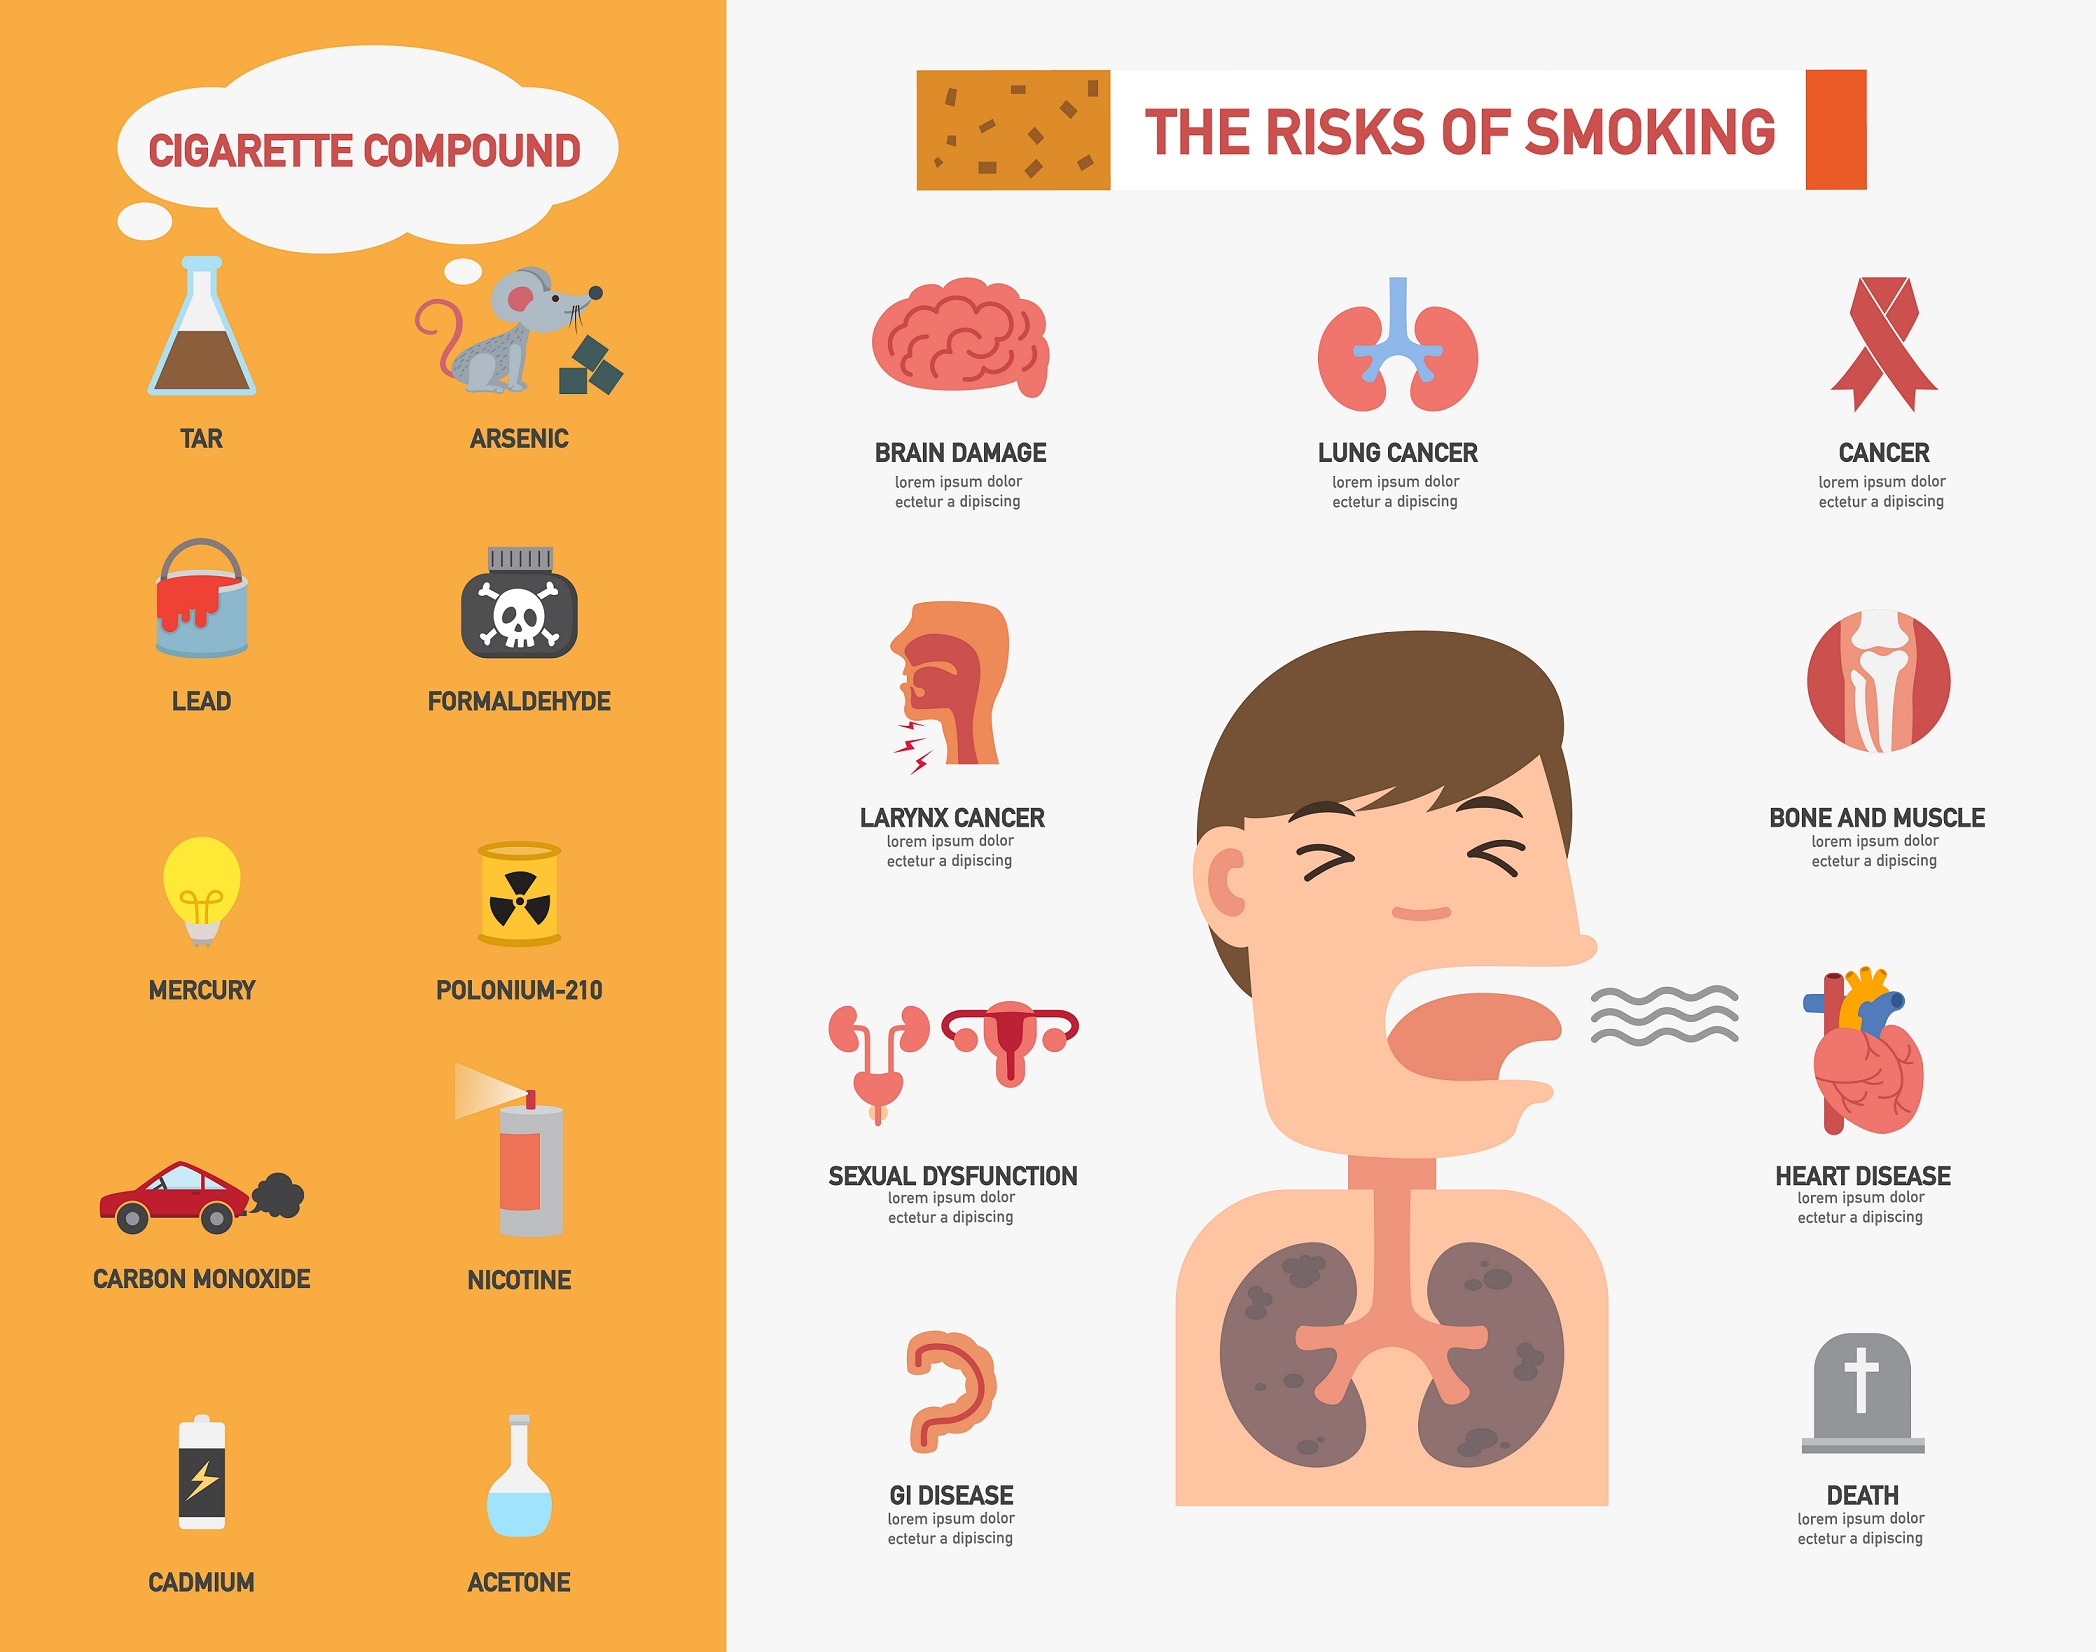 The negative effects of smoking to smokers and nonsmokers